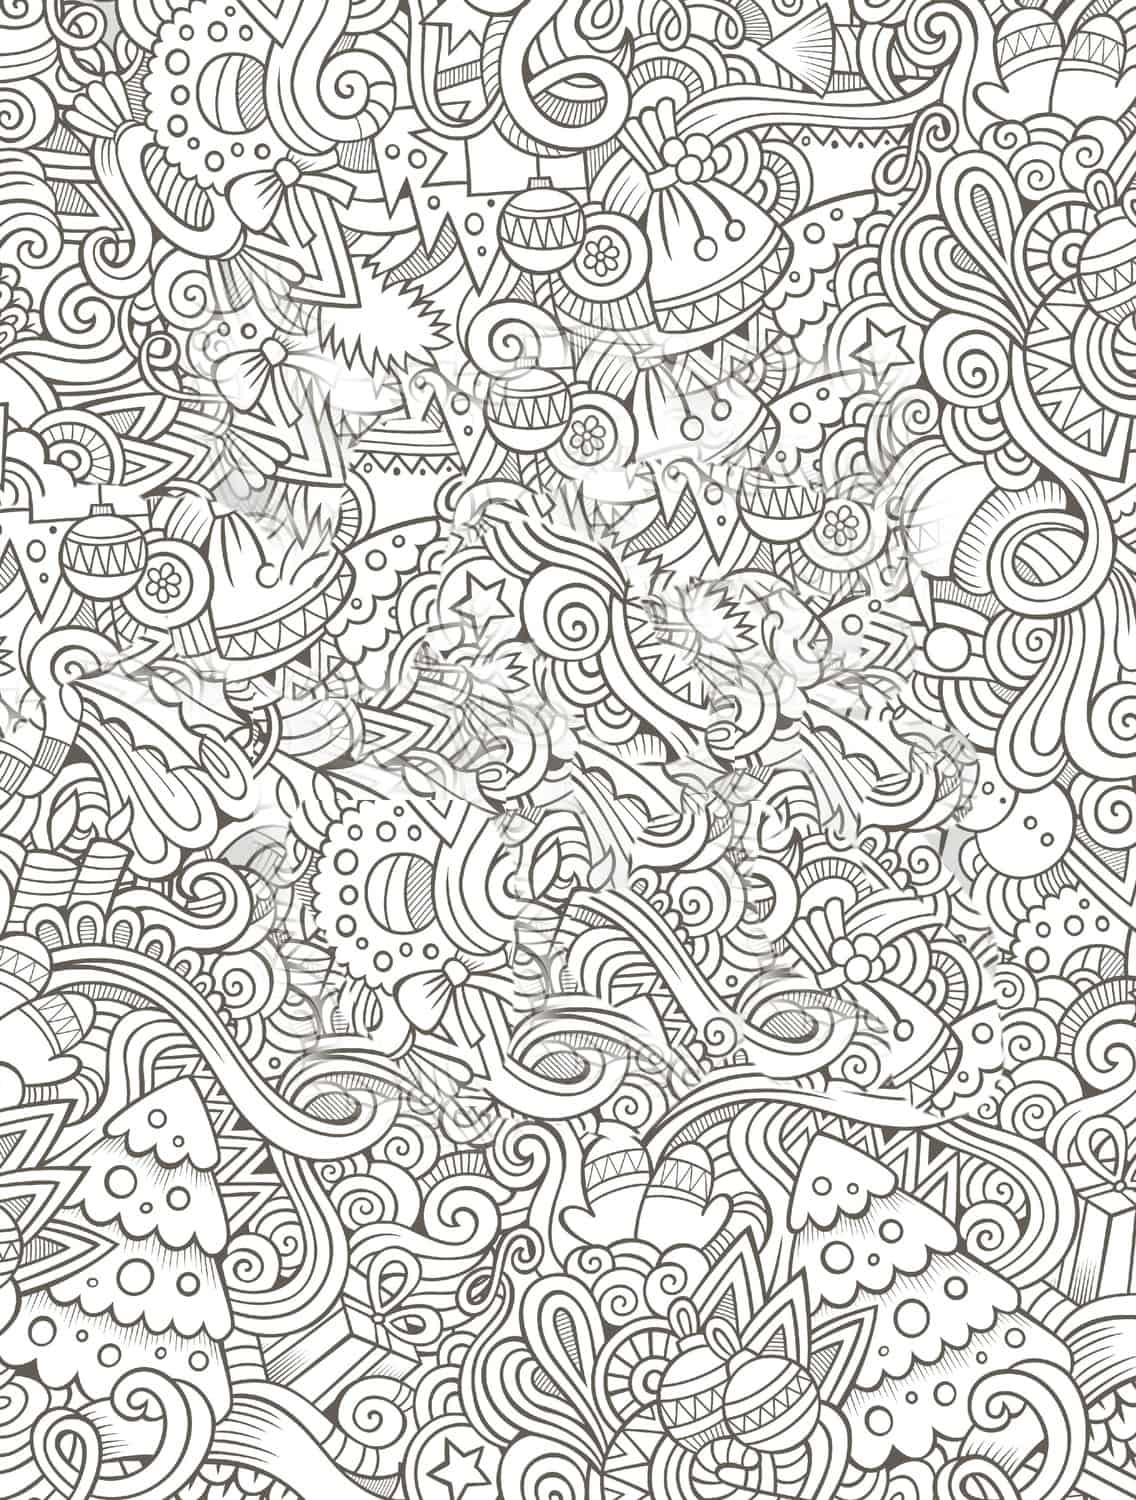 Coloring pages for adults for free -  Here And Pdf Here Easy Adult Coloring Pages